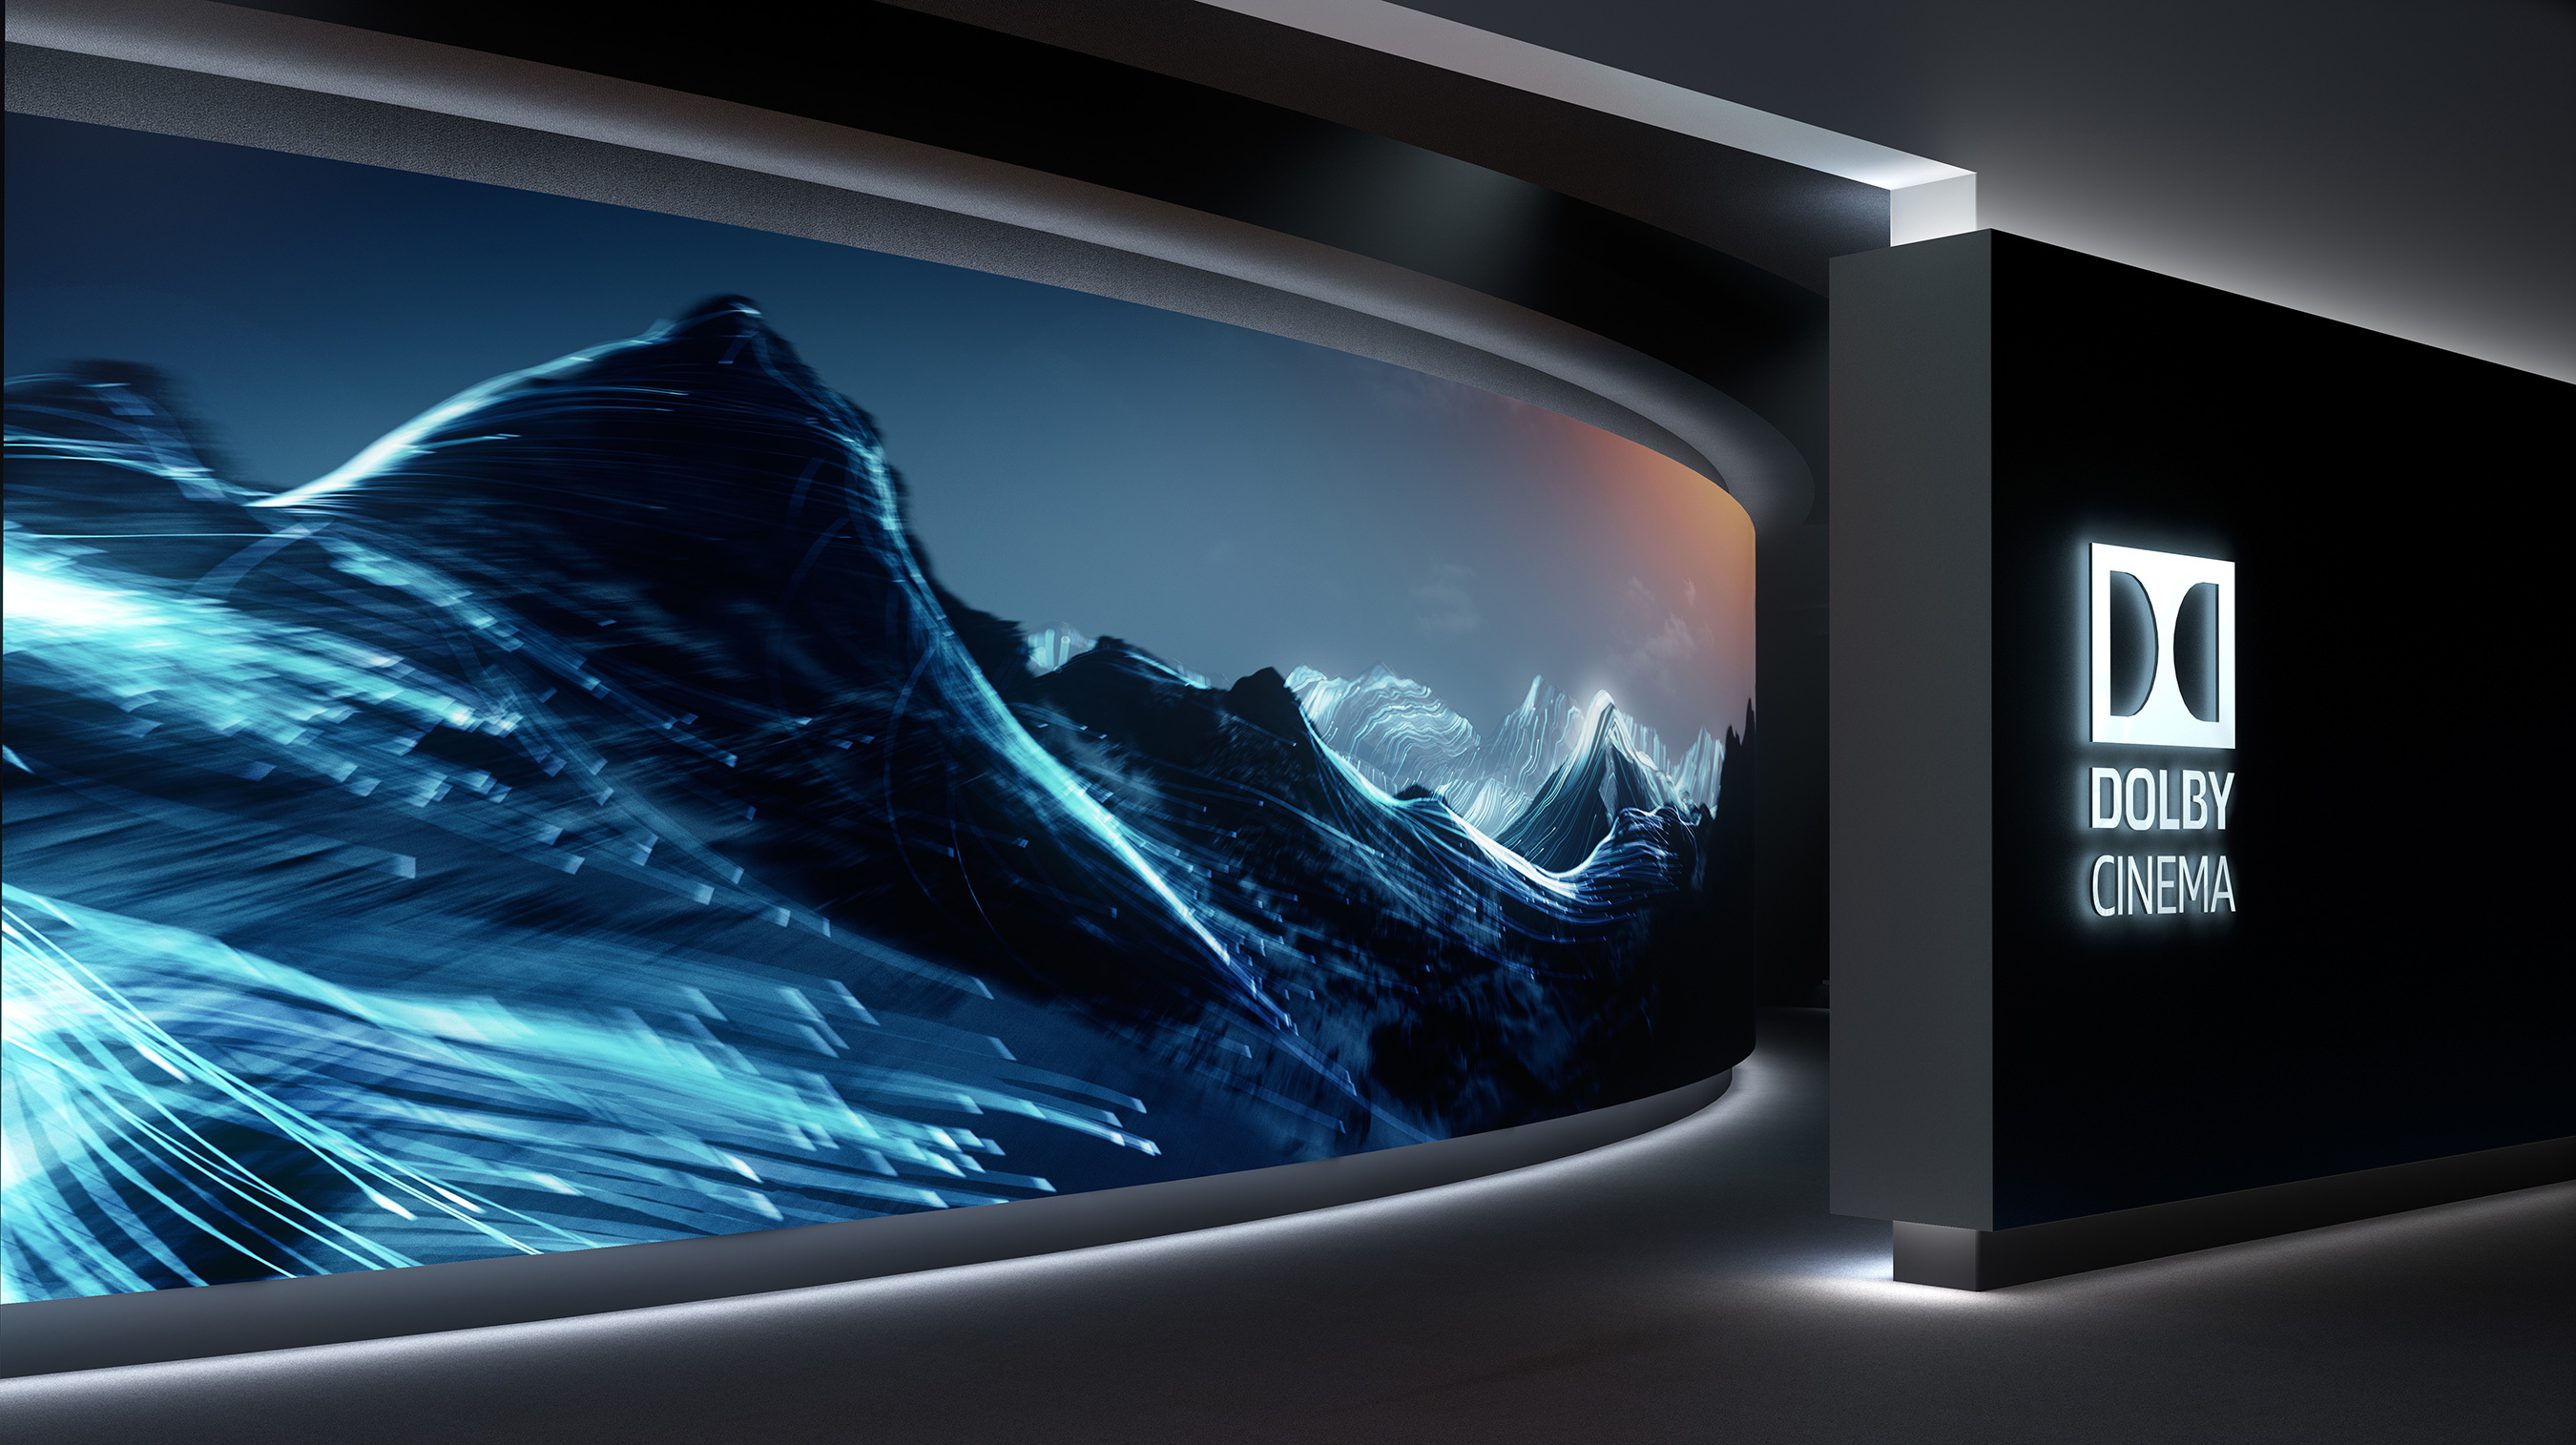 Justice Prevails in Dolby Cinema | Business Wire